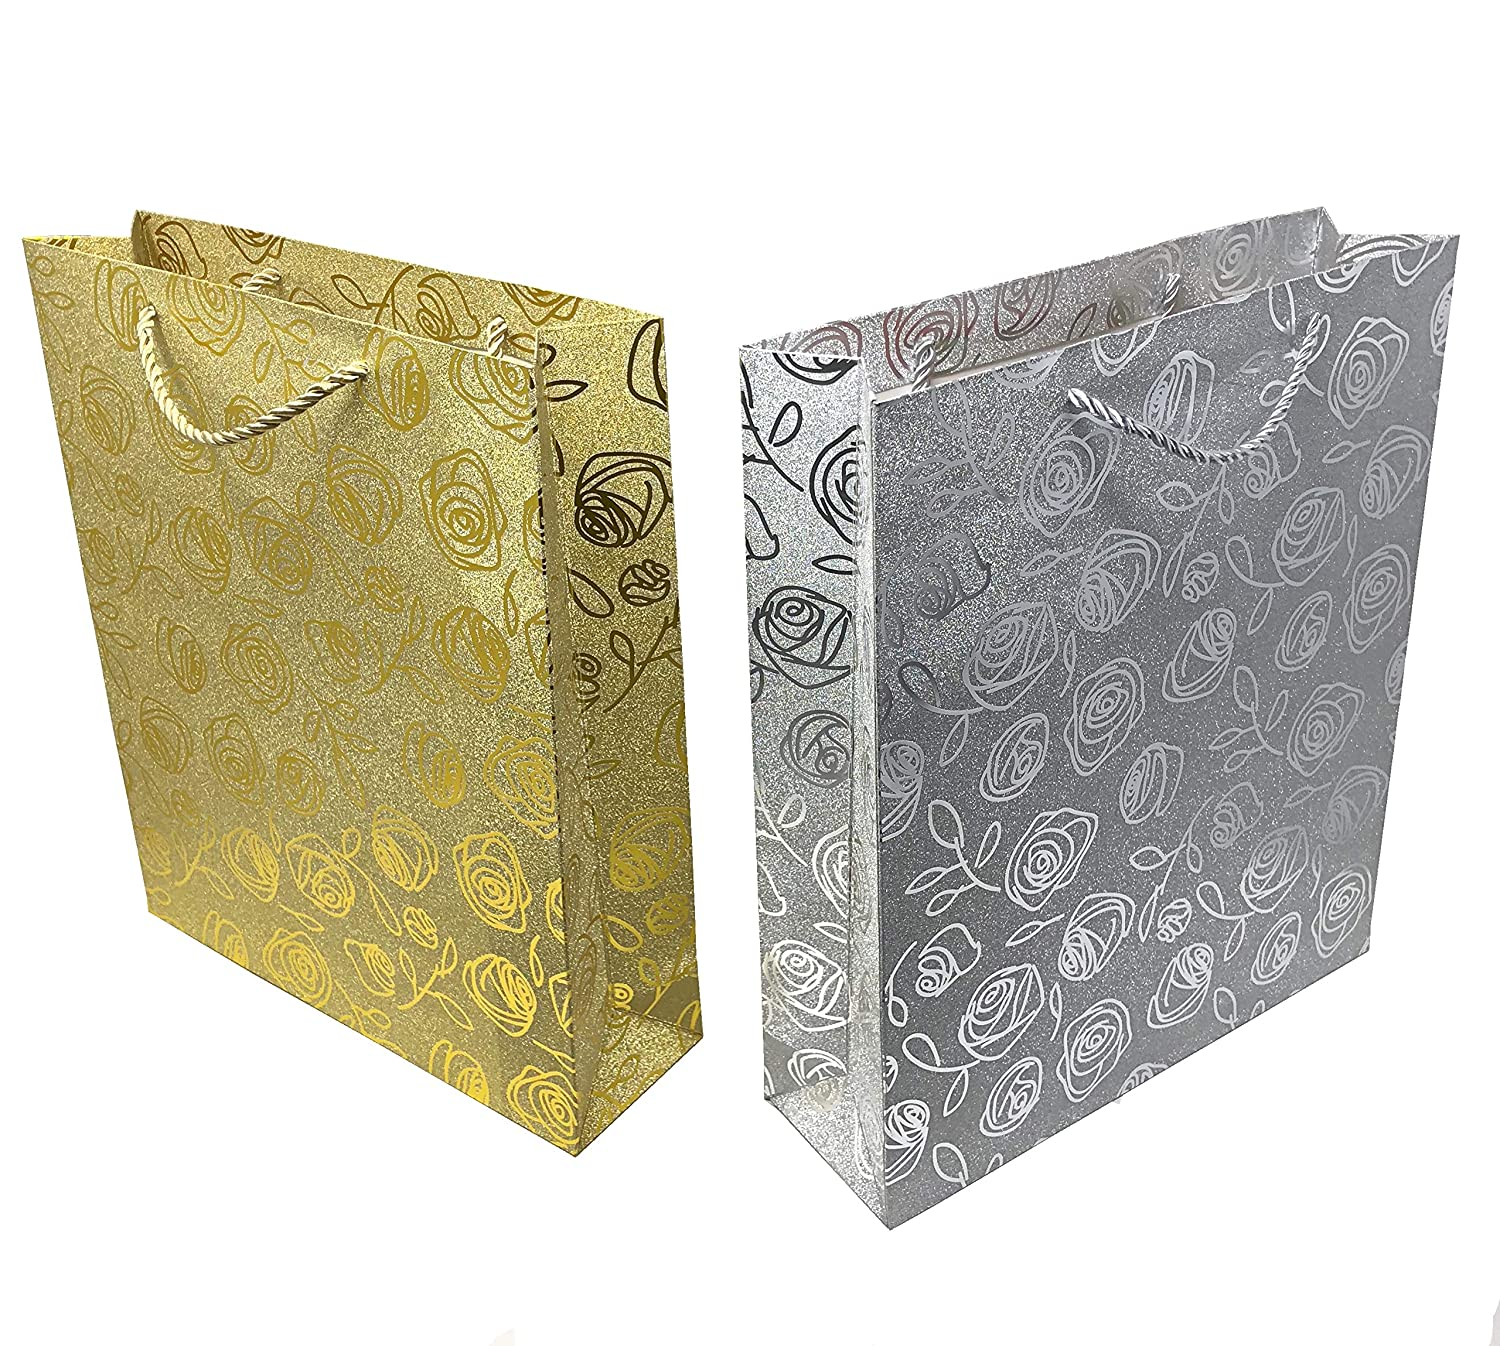 ad248a882288d Amazon.com  Haute Soiree - 4 Pack - Large Sized High Quality Luxurious Gift  Bag Set with Rope Handles - 2 Gold and 2 Silver Shimmering Floral Designs  ...